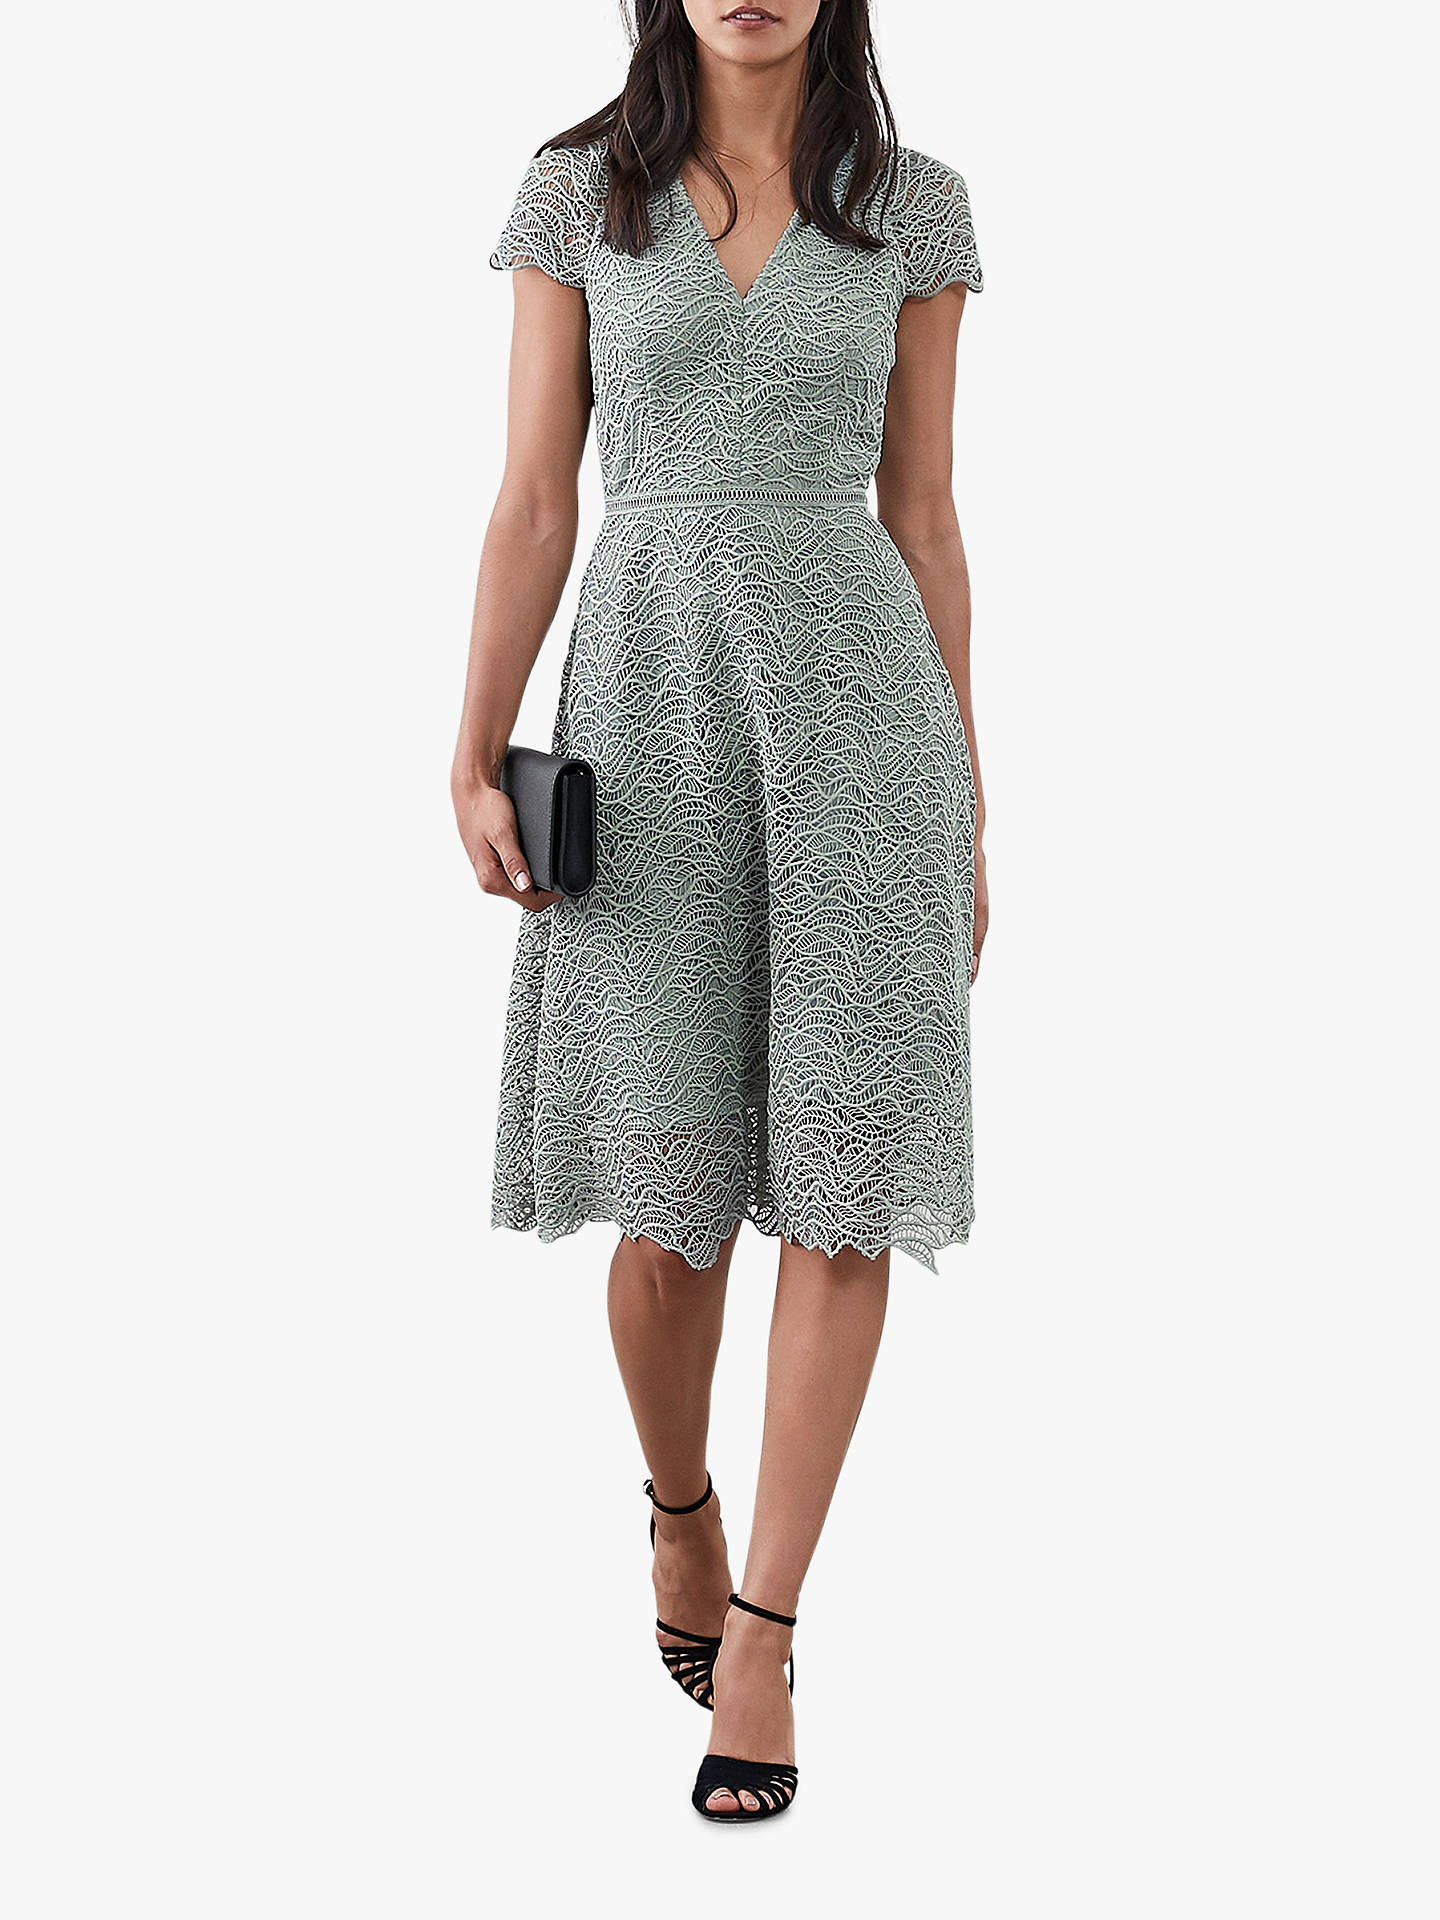 BuyReiss Arielle Leaf Lace Dress, Mid Green, 6 Online at johnlewis.com